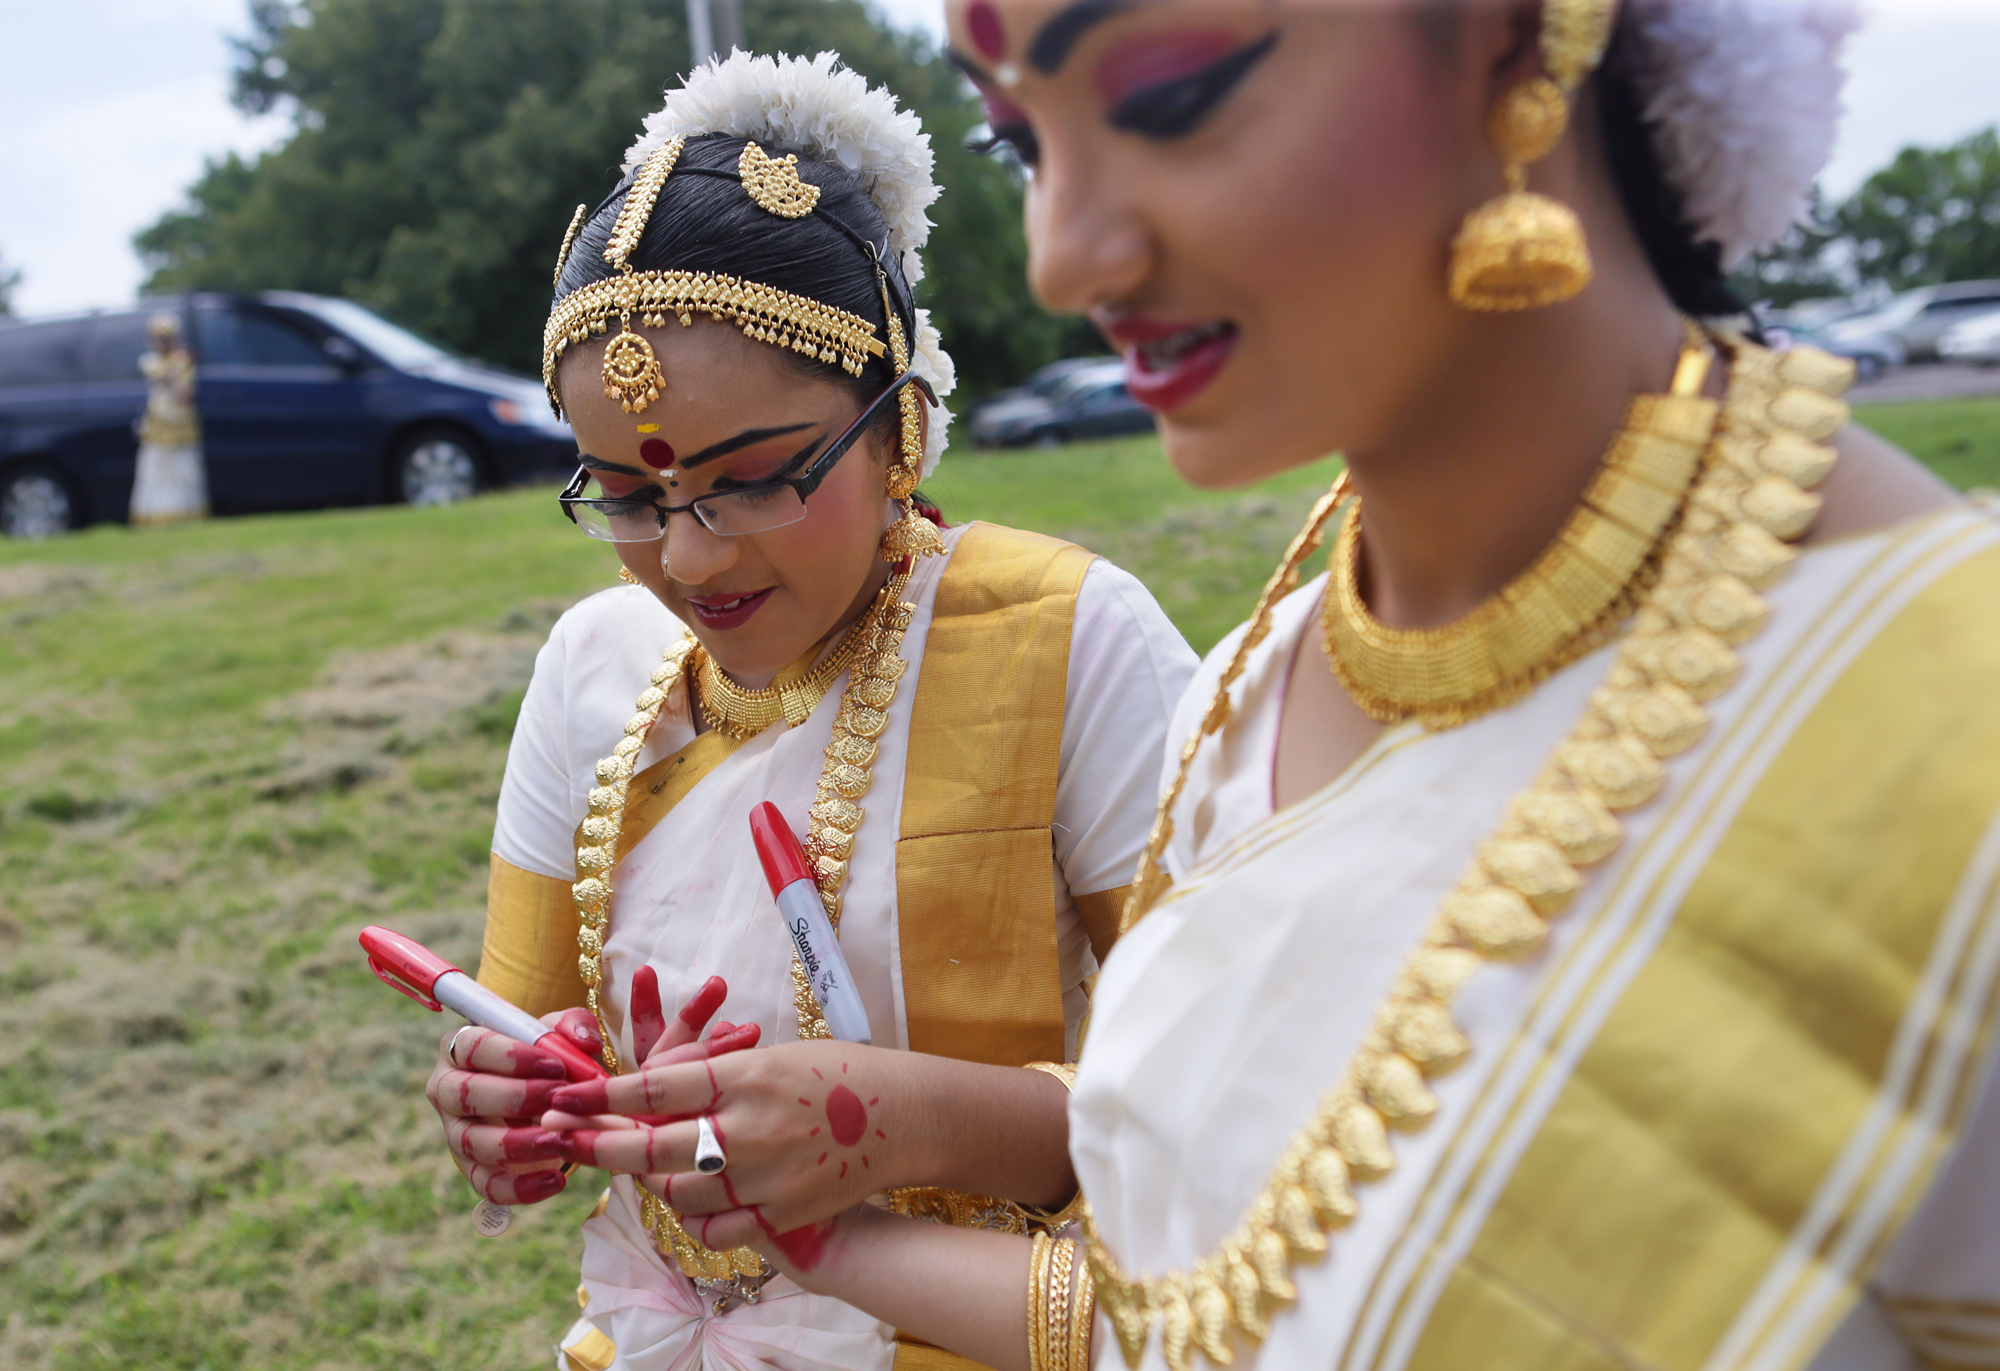 "Sruthi Ainapurapu, 13, (left), marks 16-year-old Varsha Kuchi's hands, before a performance at Queeny Park as part of Rath Yatra, or ""Chariot Festival"", which brings Hindu deities out in public on a chariot to expose people to the religion on Sunday, July 26, 2015. The festival began at the Hindu Temple of St. Louis in Ballwin and ended in Queeny Park."